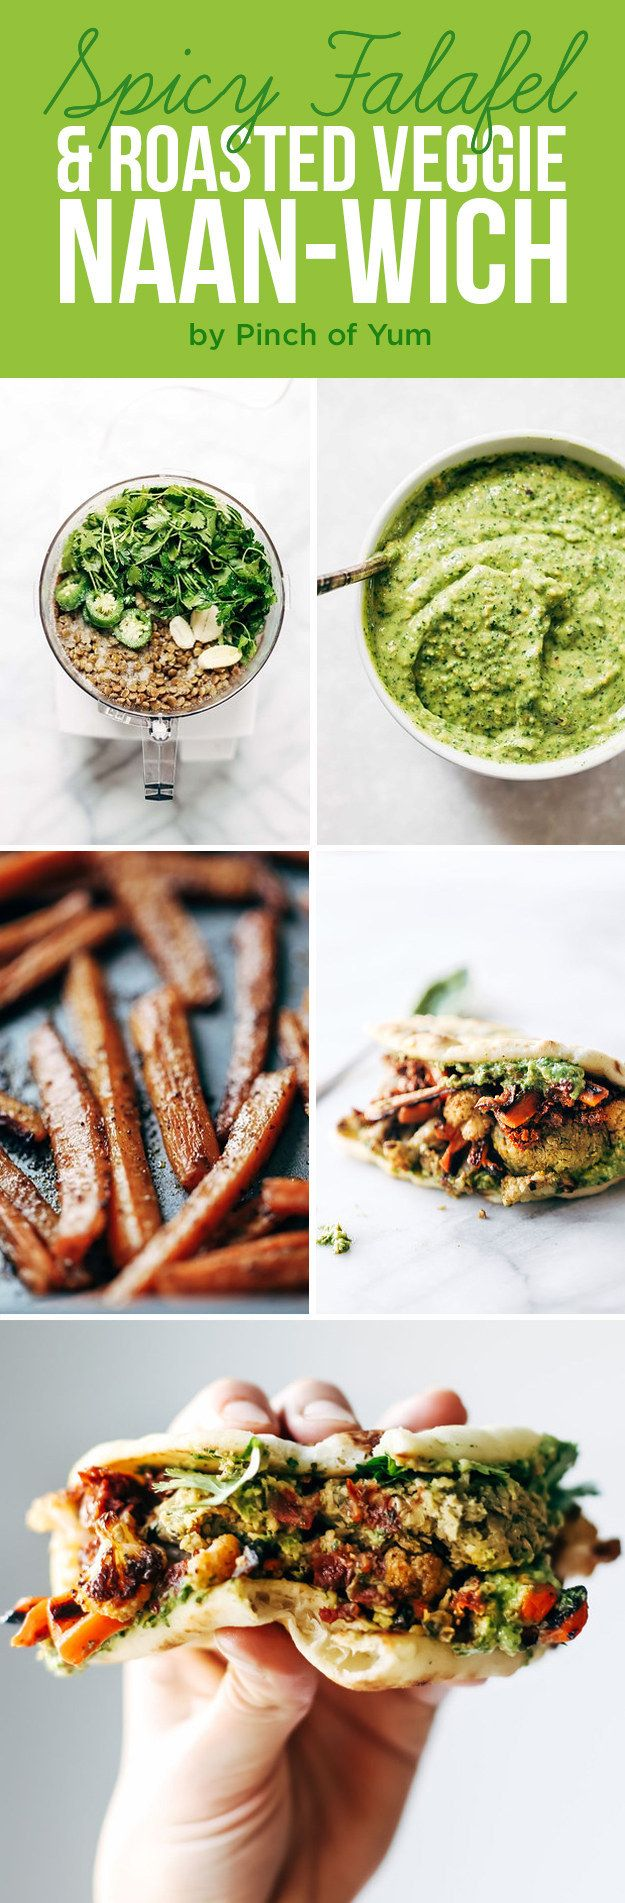 Spicy Falafel and Roasted Veggie Naan-wich | Here's What You Should Eat For Dinner This Week